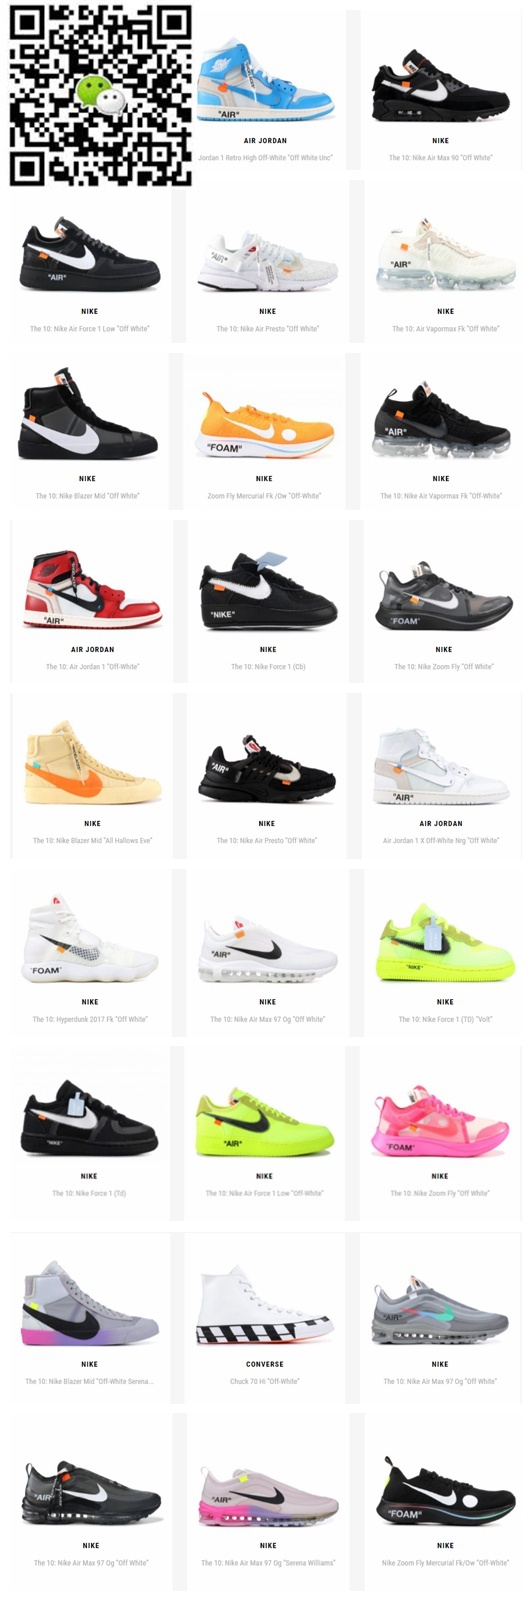 huge selection of 89432 f98a0 2019 nike replicas off white shoes.